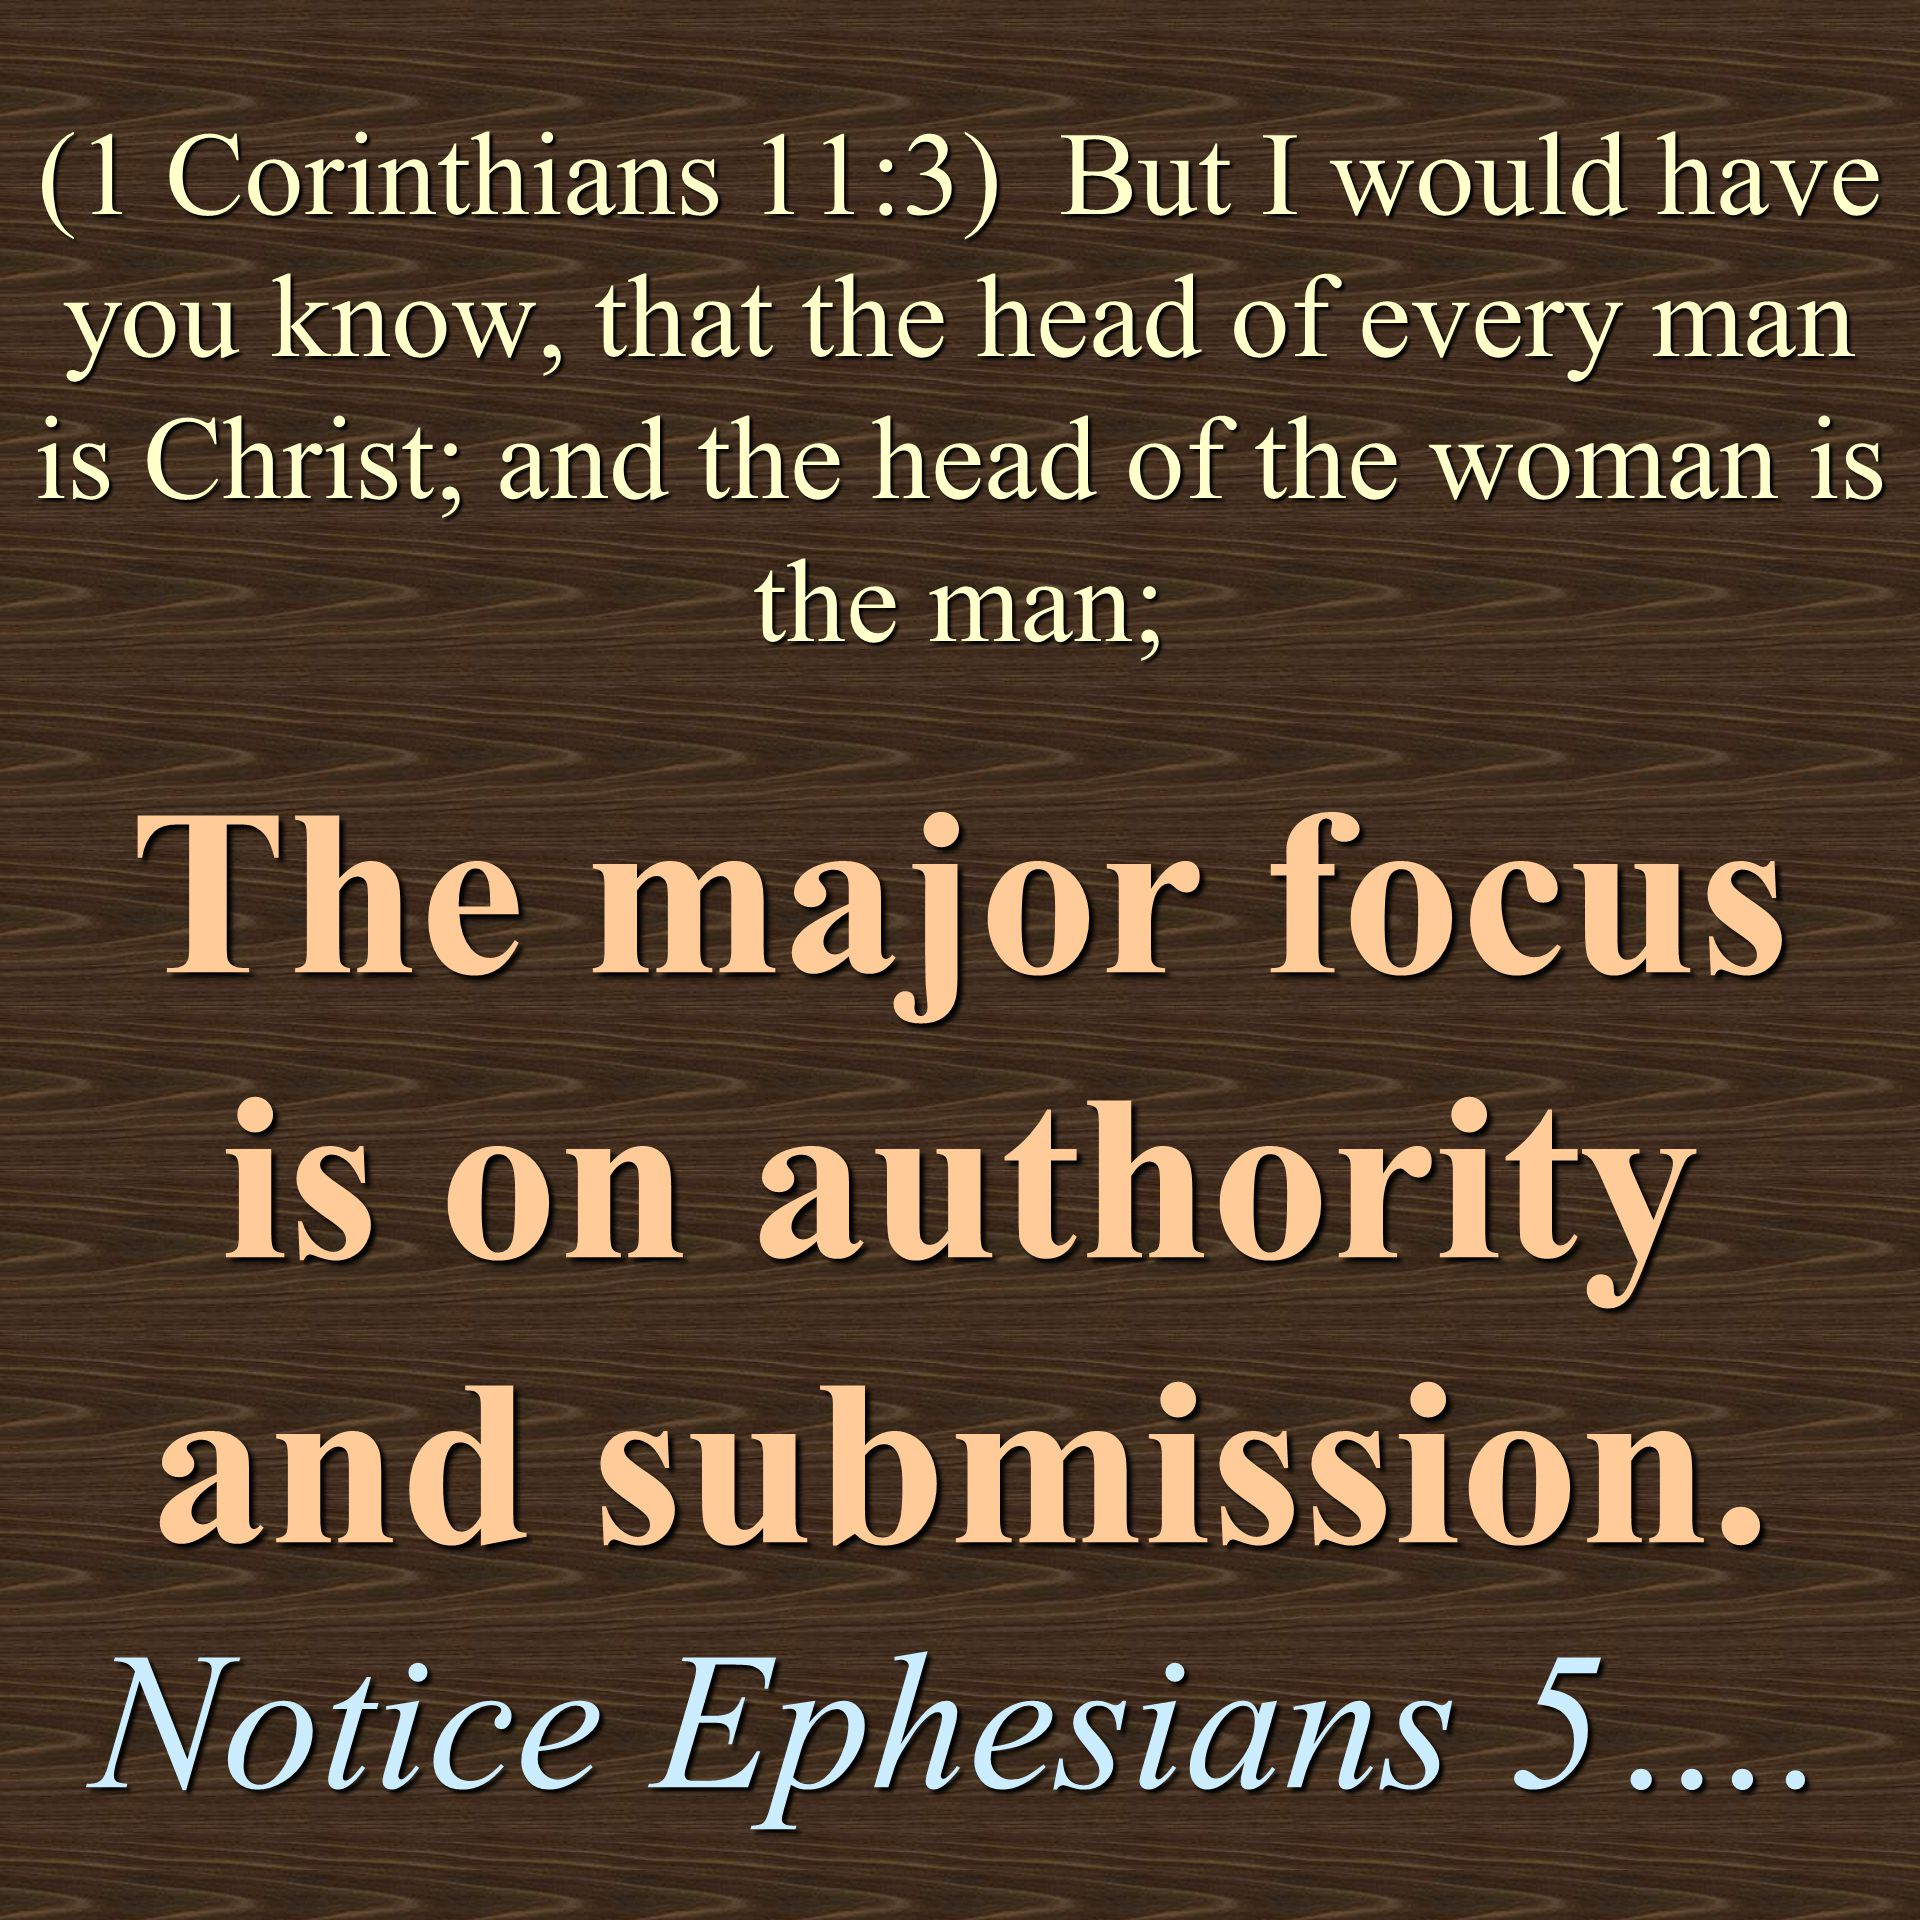 The major focus is on authority and submission. Notice Ephesians 5….